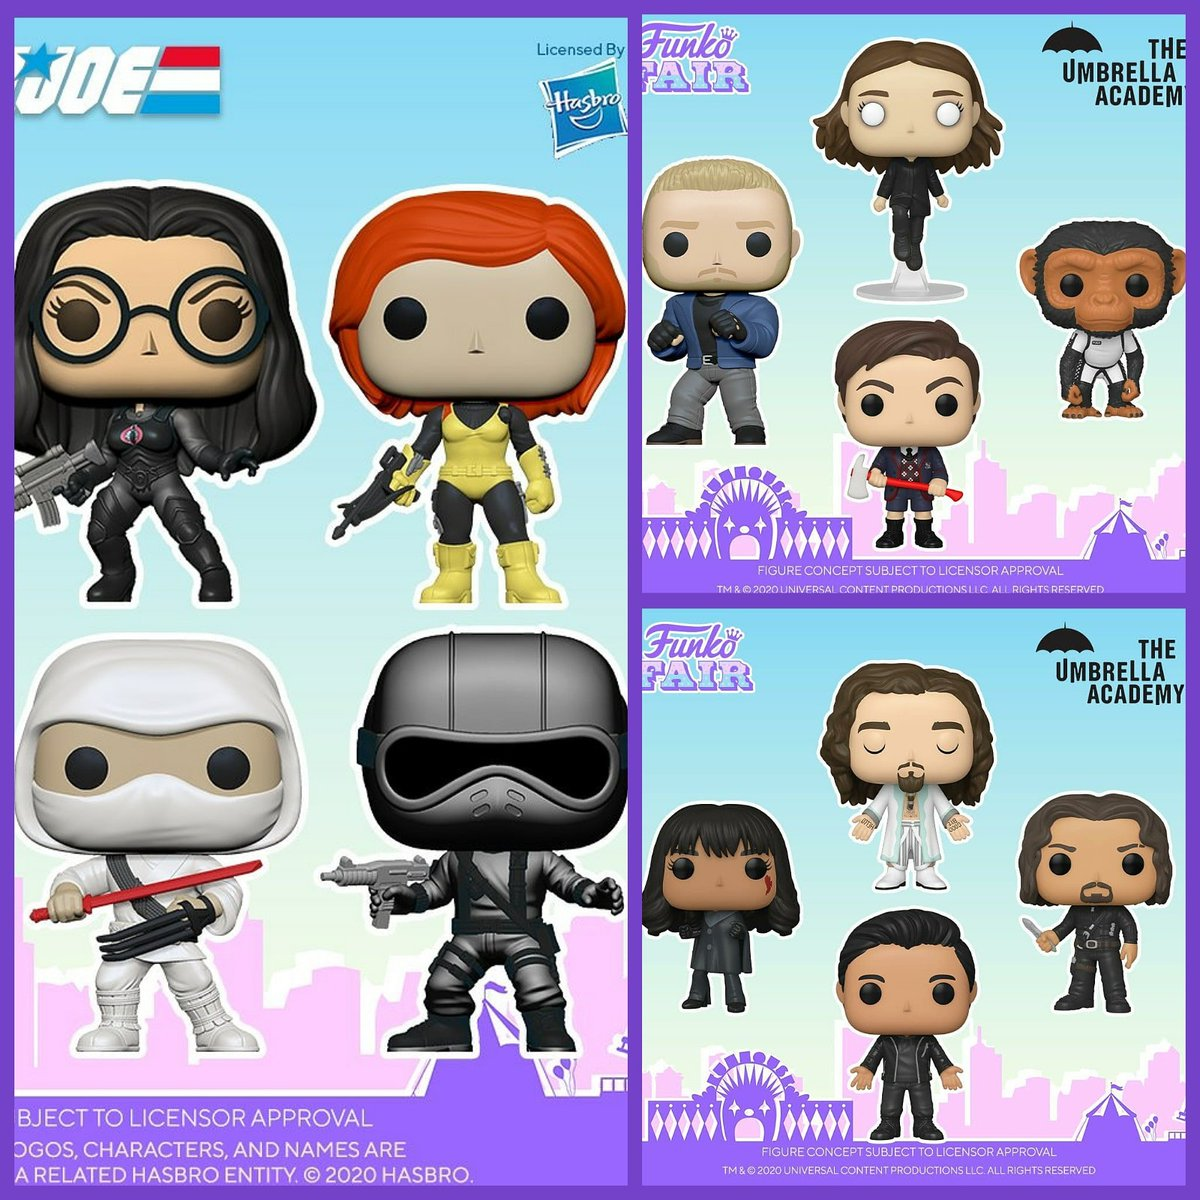 G.i. Joe & Umbrella Academy are available for preorder at @circlecitytoys At a great price! Plus use code Serlent10 for 10% off   . #Funko #Pop #FunkoPop #toys #popvinyls #funko #funkophotoa #serlentpops #serlent